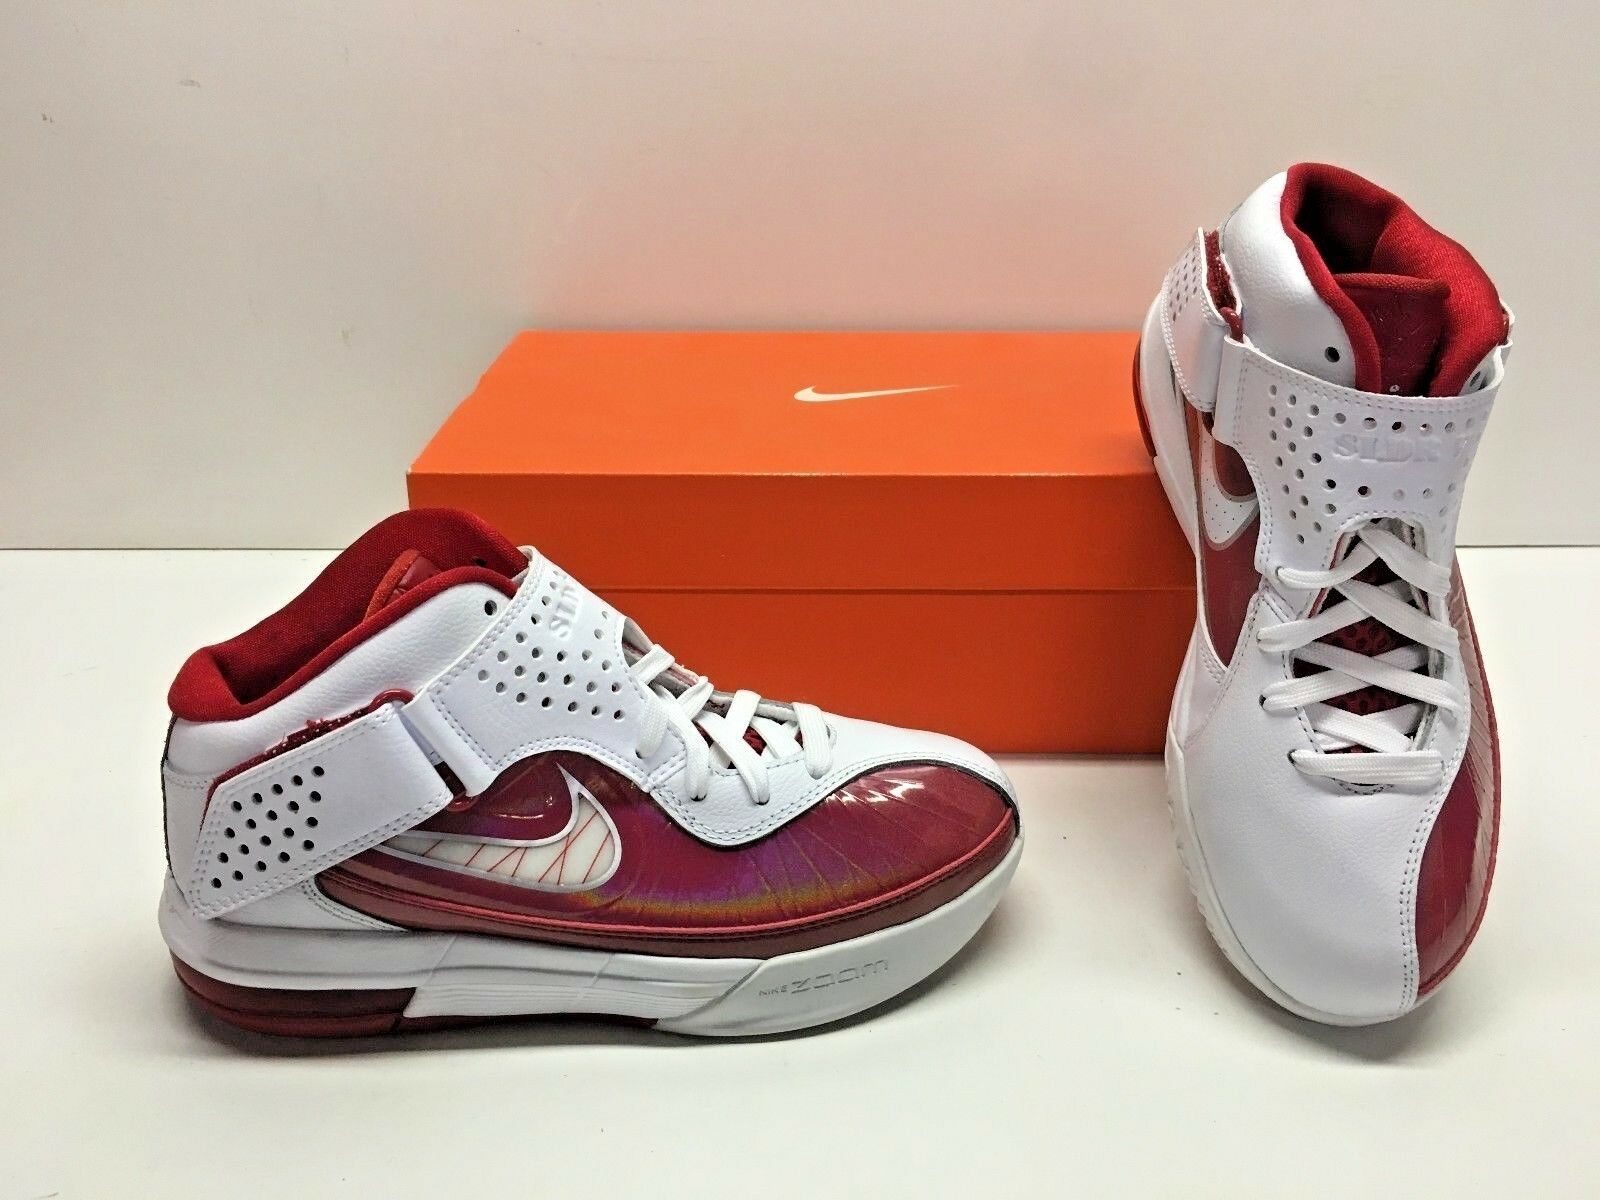 Nike Air Max Soldier V 5 TB Lebron Basketball White Red Sneakers Shoes Womens 6